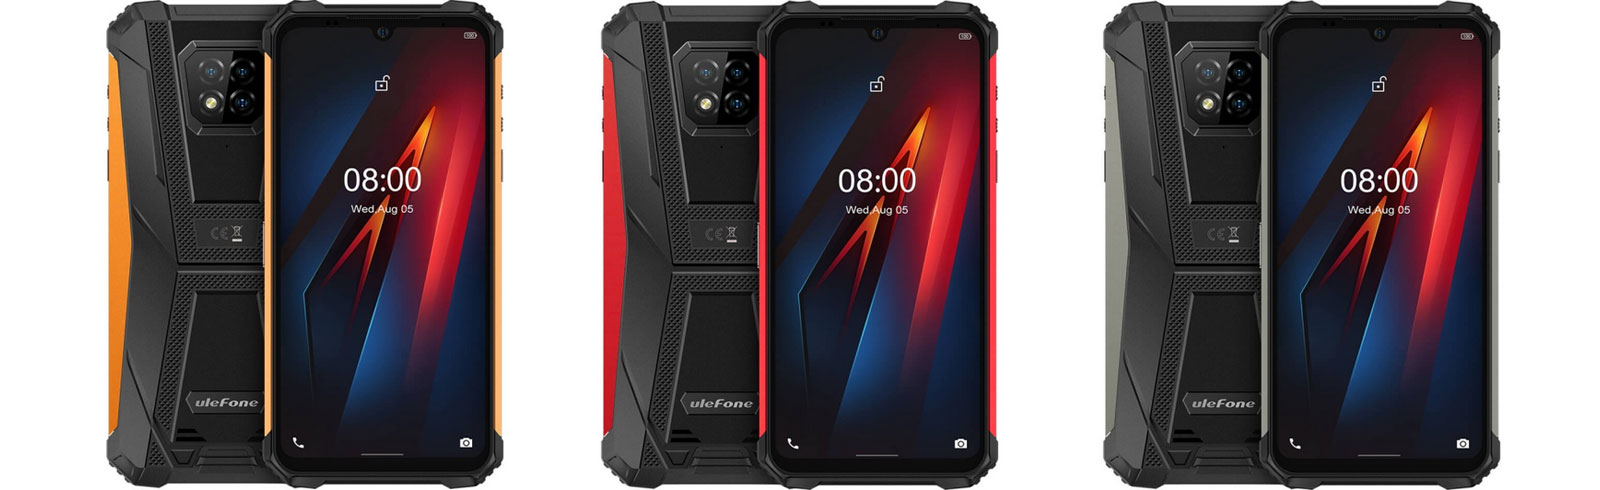 Our in-depth Ulefone Armor 8 review is up